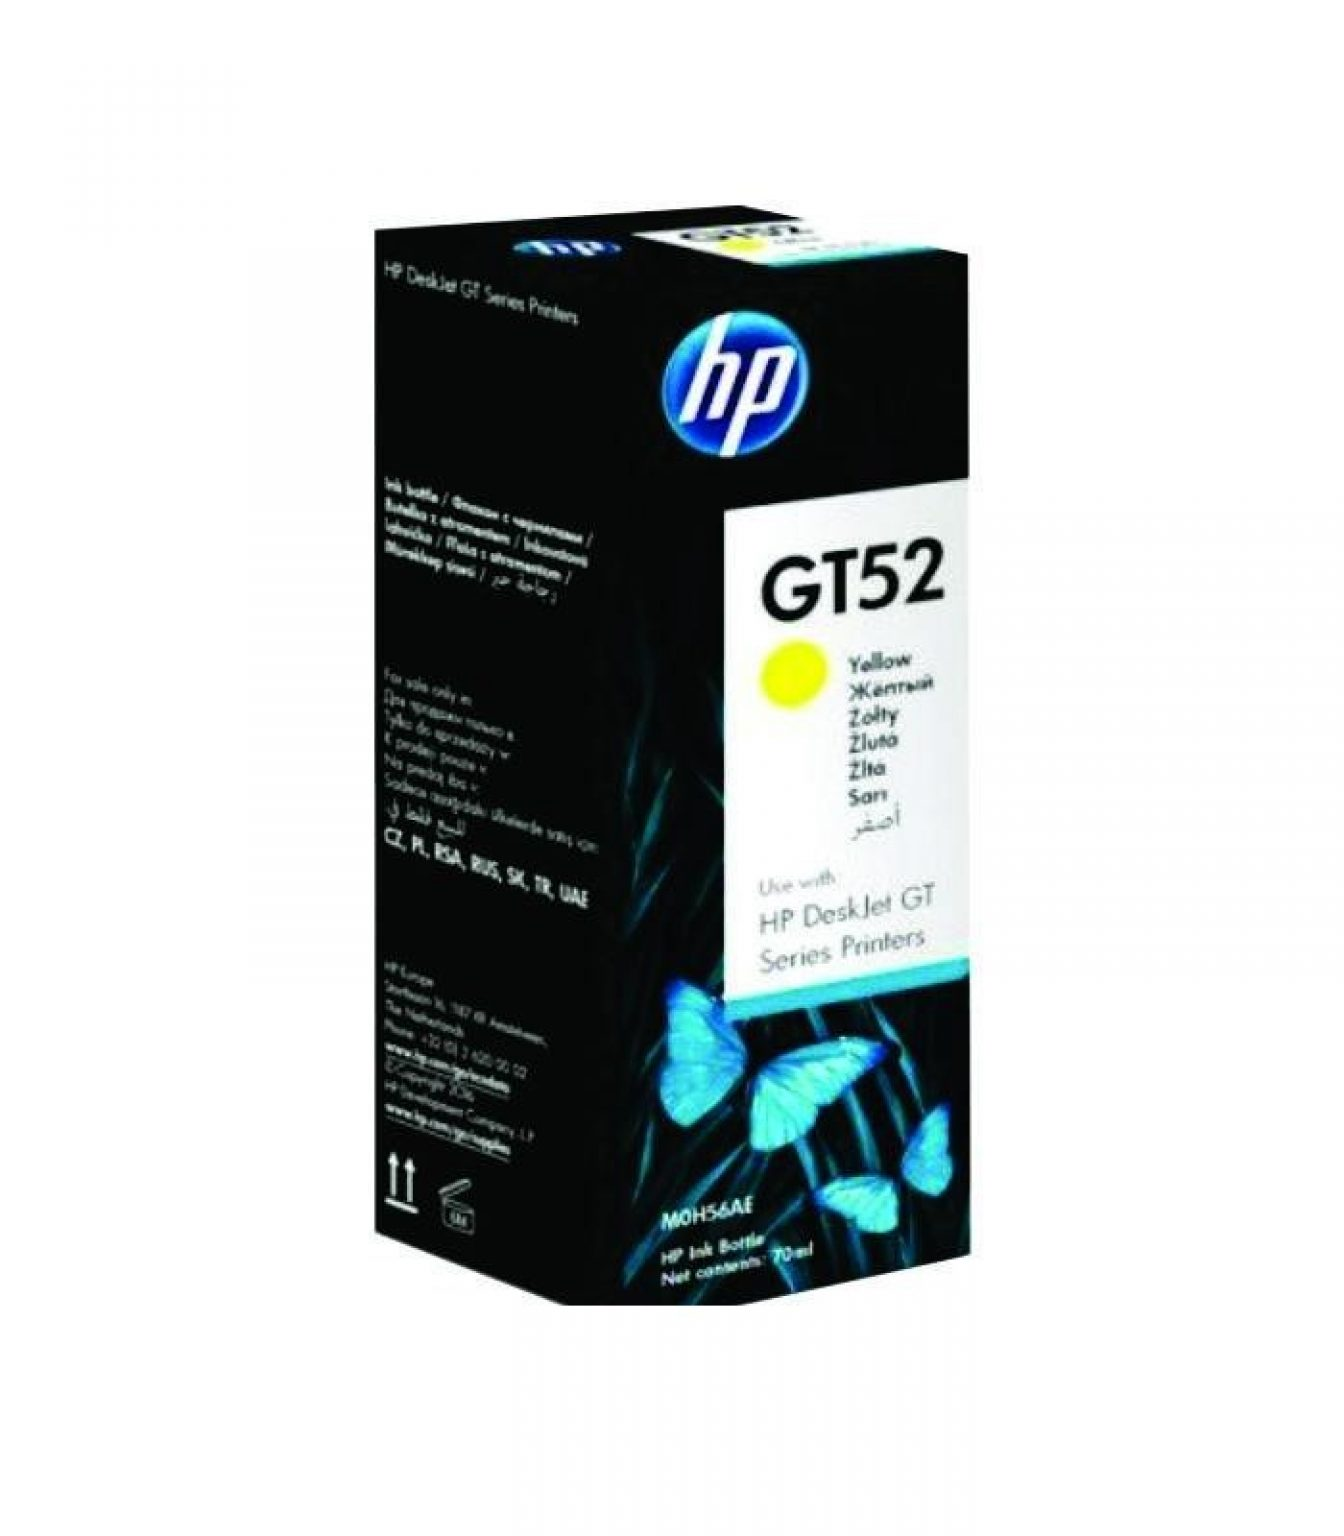 HP - GT52 Yellow Original Ink Bottle [M0H56AA]